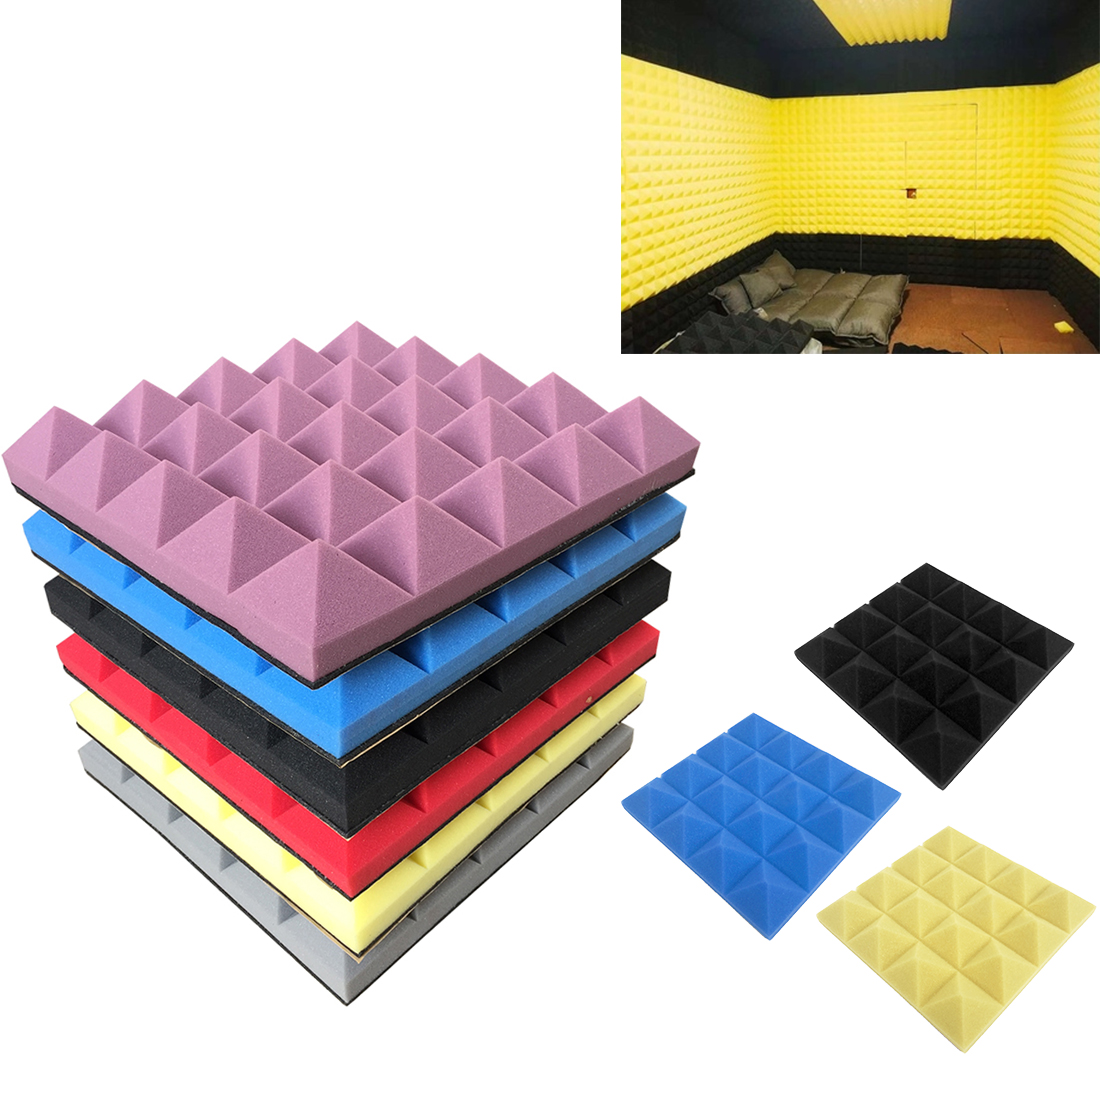 Acoustic Foam Board Soundproof Sound-absorbing Cotton Drum Room Recording Studio Piano Wall Sound Insulation Sponge